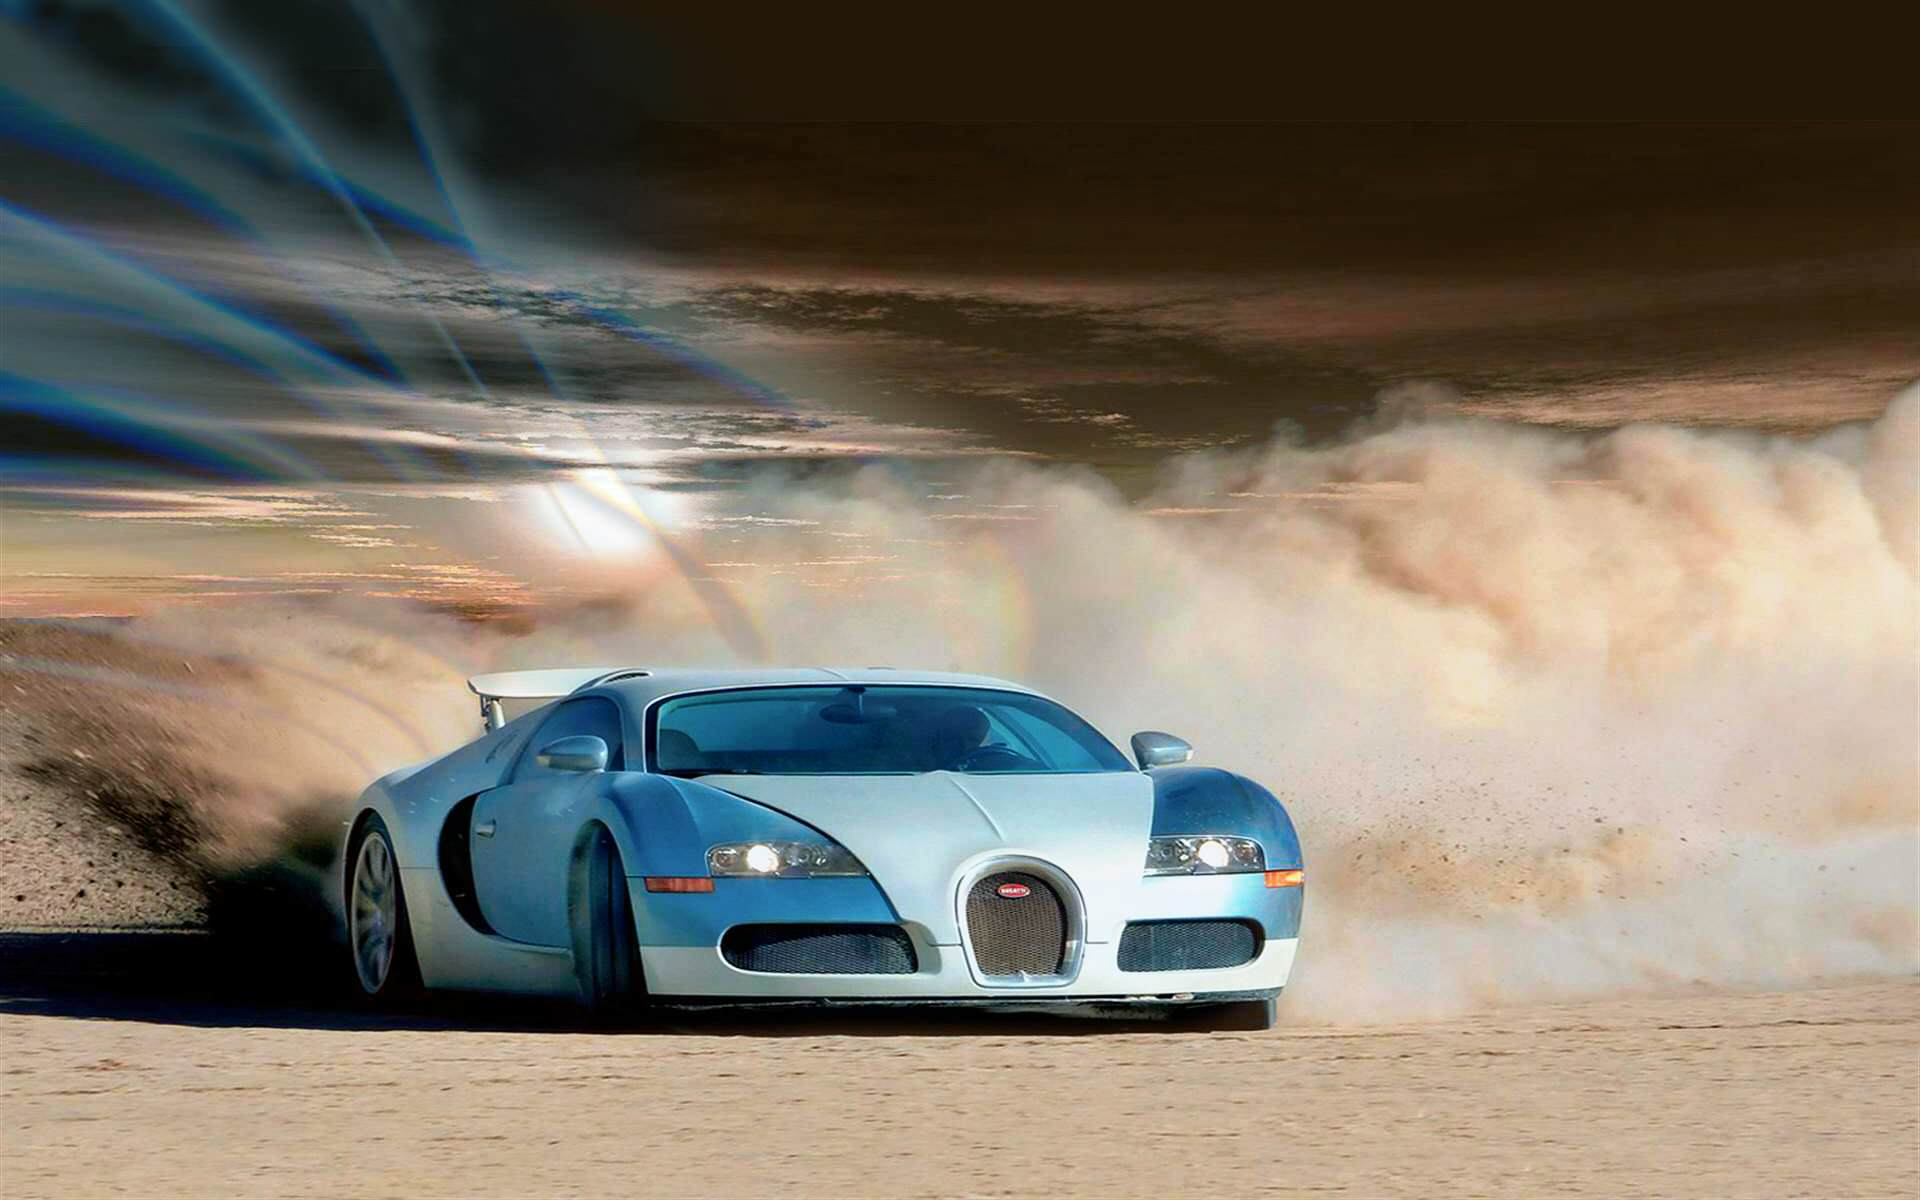 Hd Car Backgrounds Wallpapers Images Pictures Design